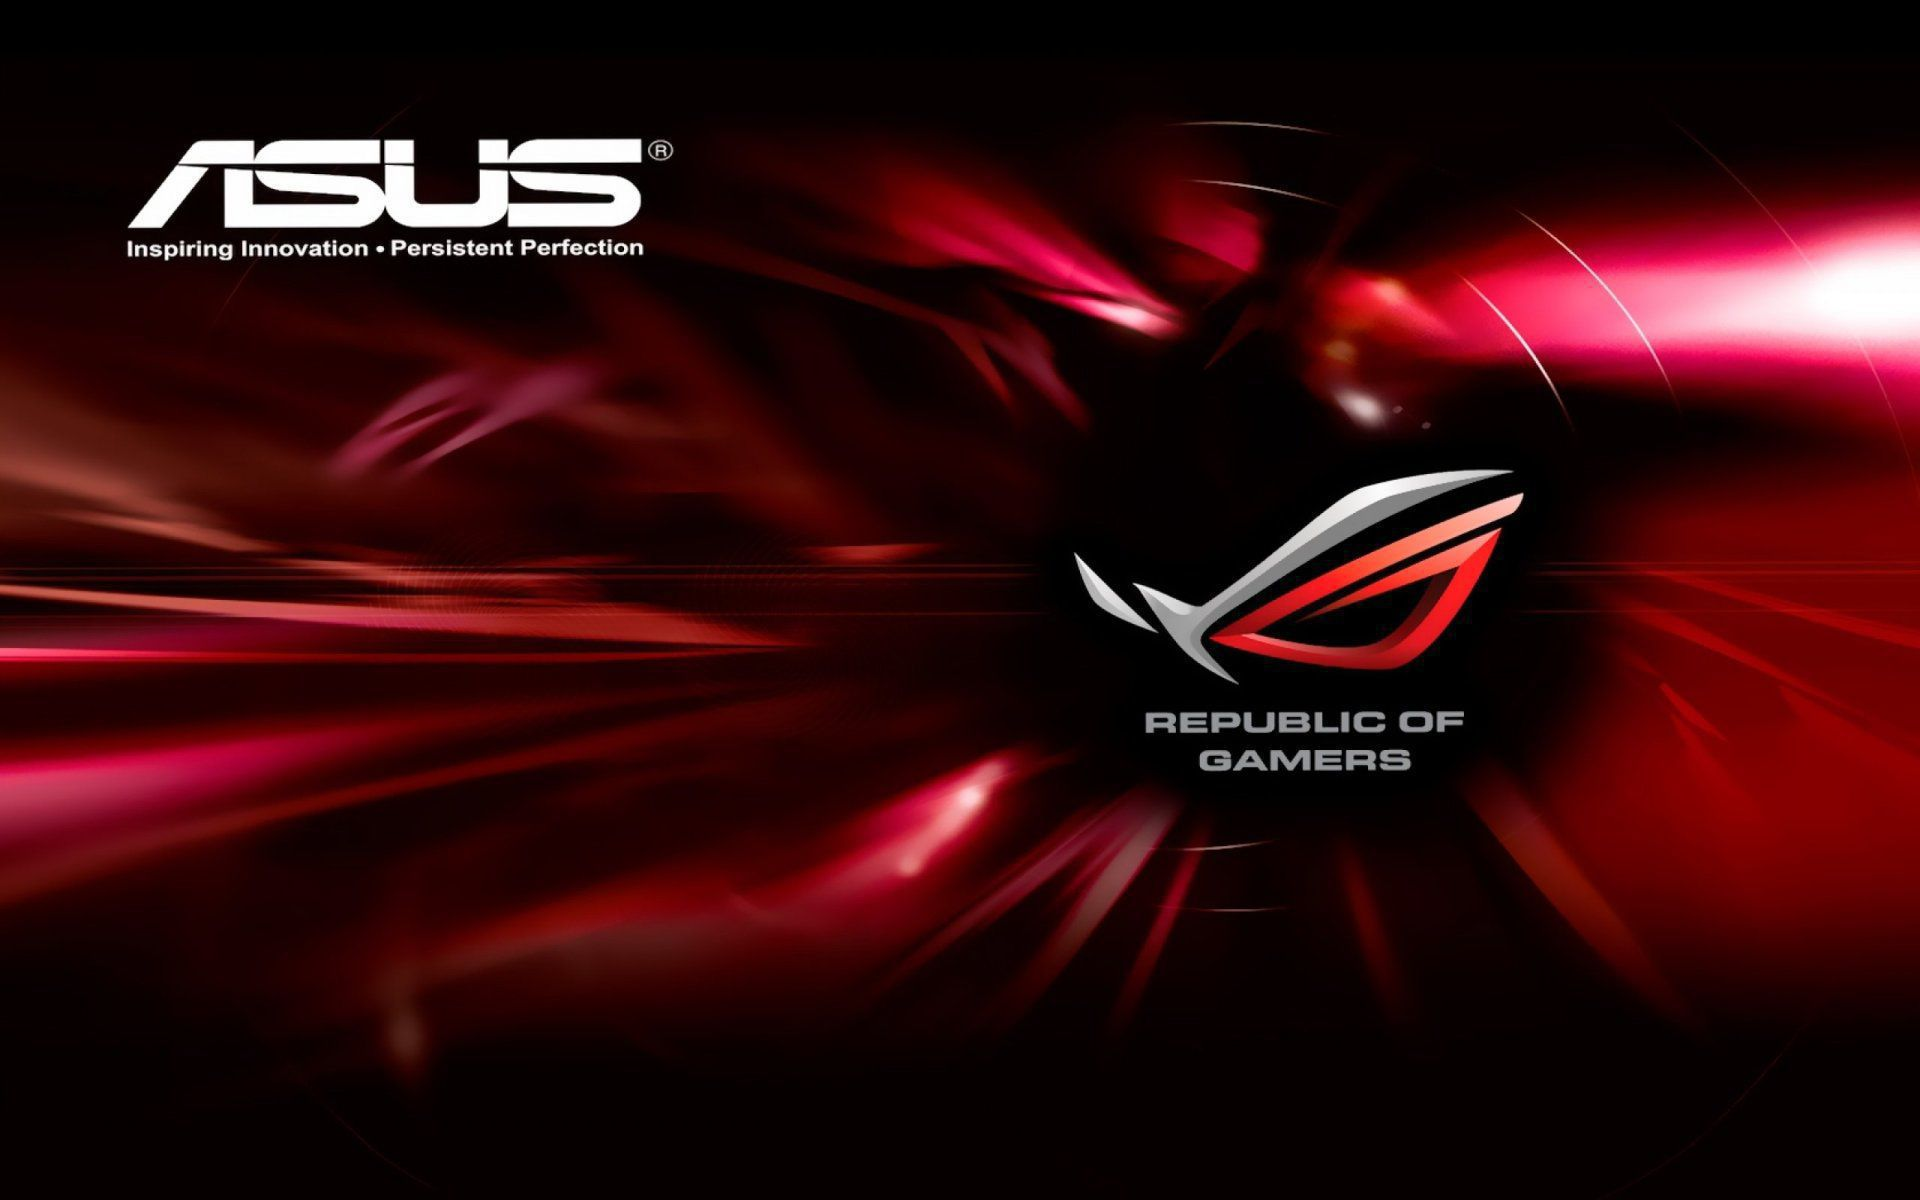 Asus Images